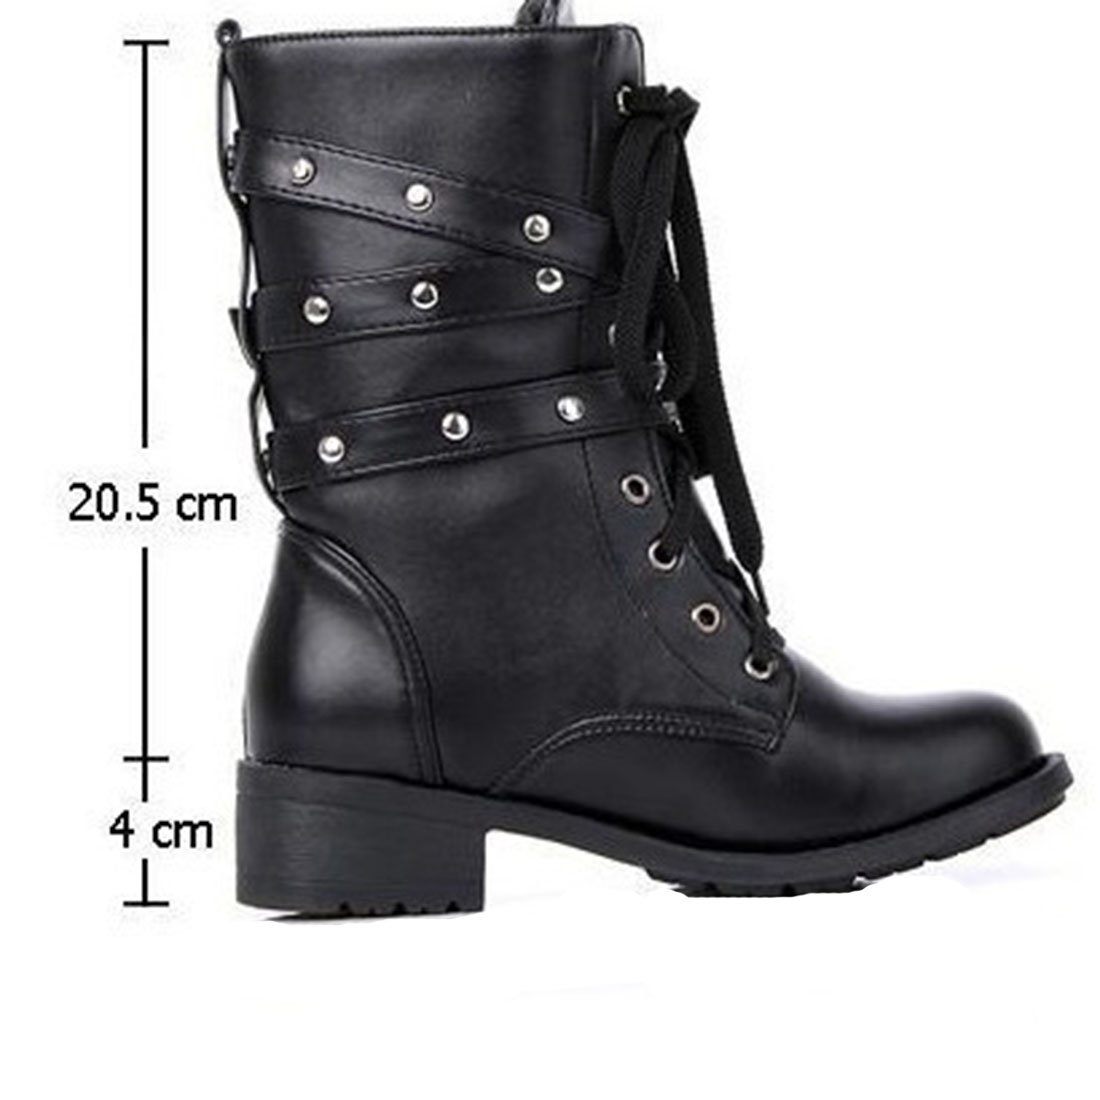 Compare Prices on Womens Combat Style Boots- Online Shopping/Buy ...